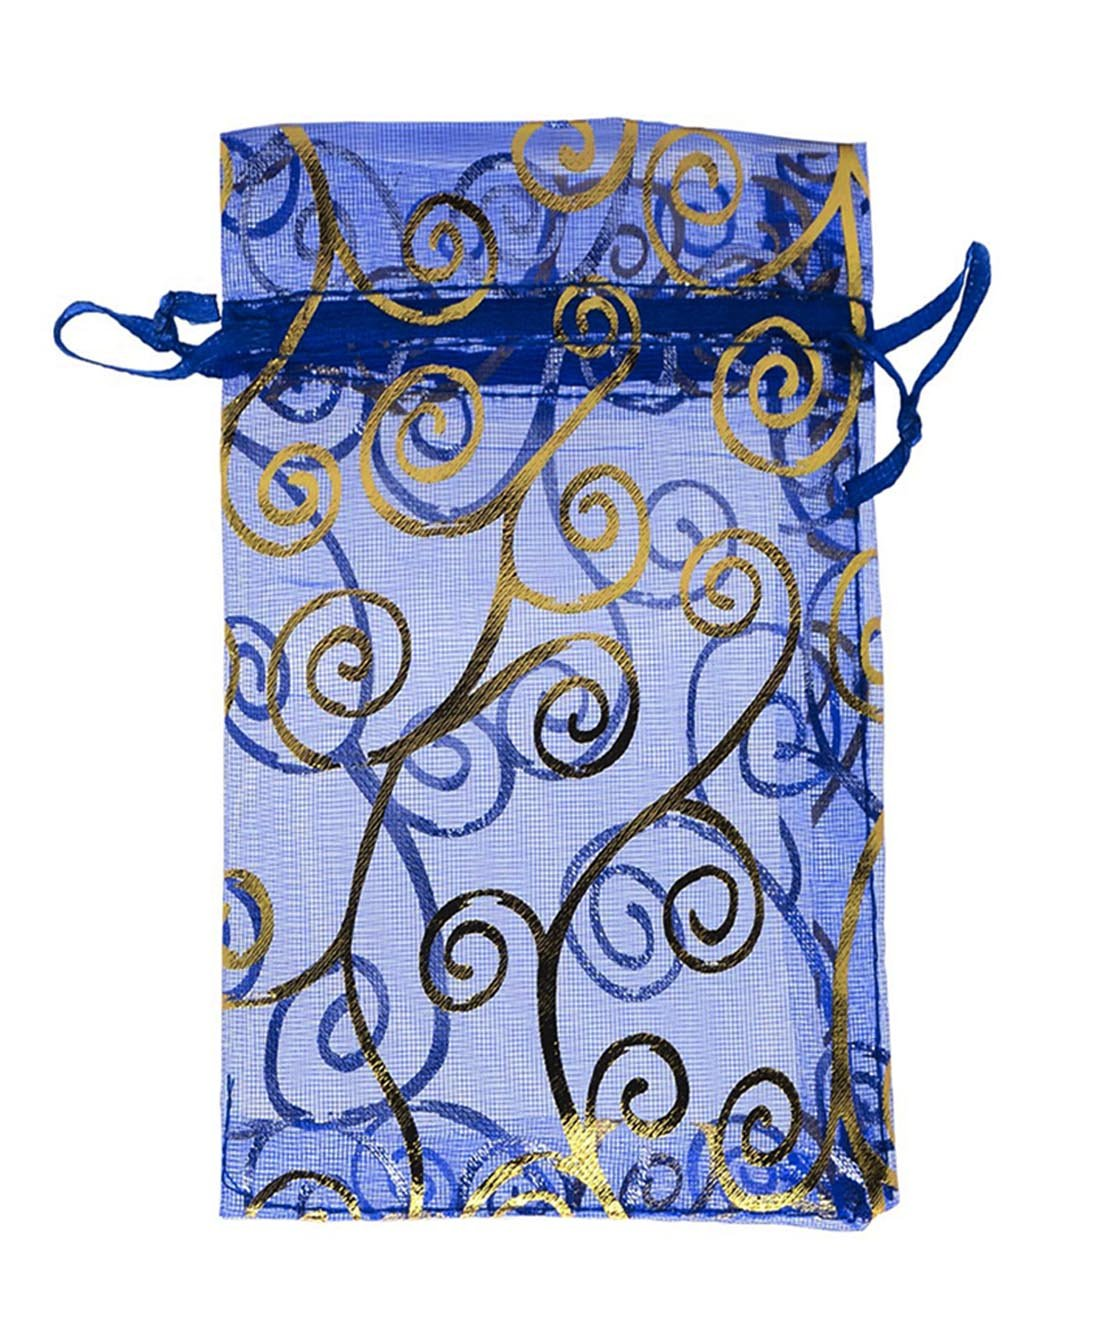 SUNGULF 100pcs Organza Pouch Bag Drawstring 4x6'' 10x15cm Strong Gift Candy Bag Jewelry Party Wedding Favor (Blue Gold)